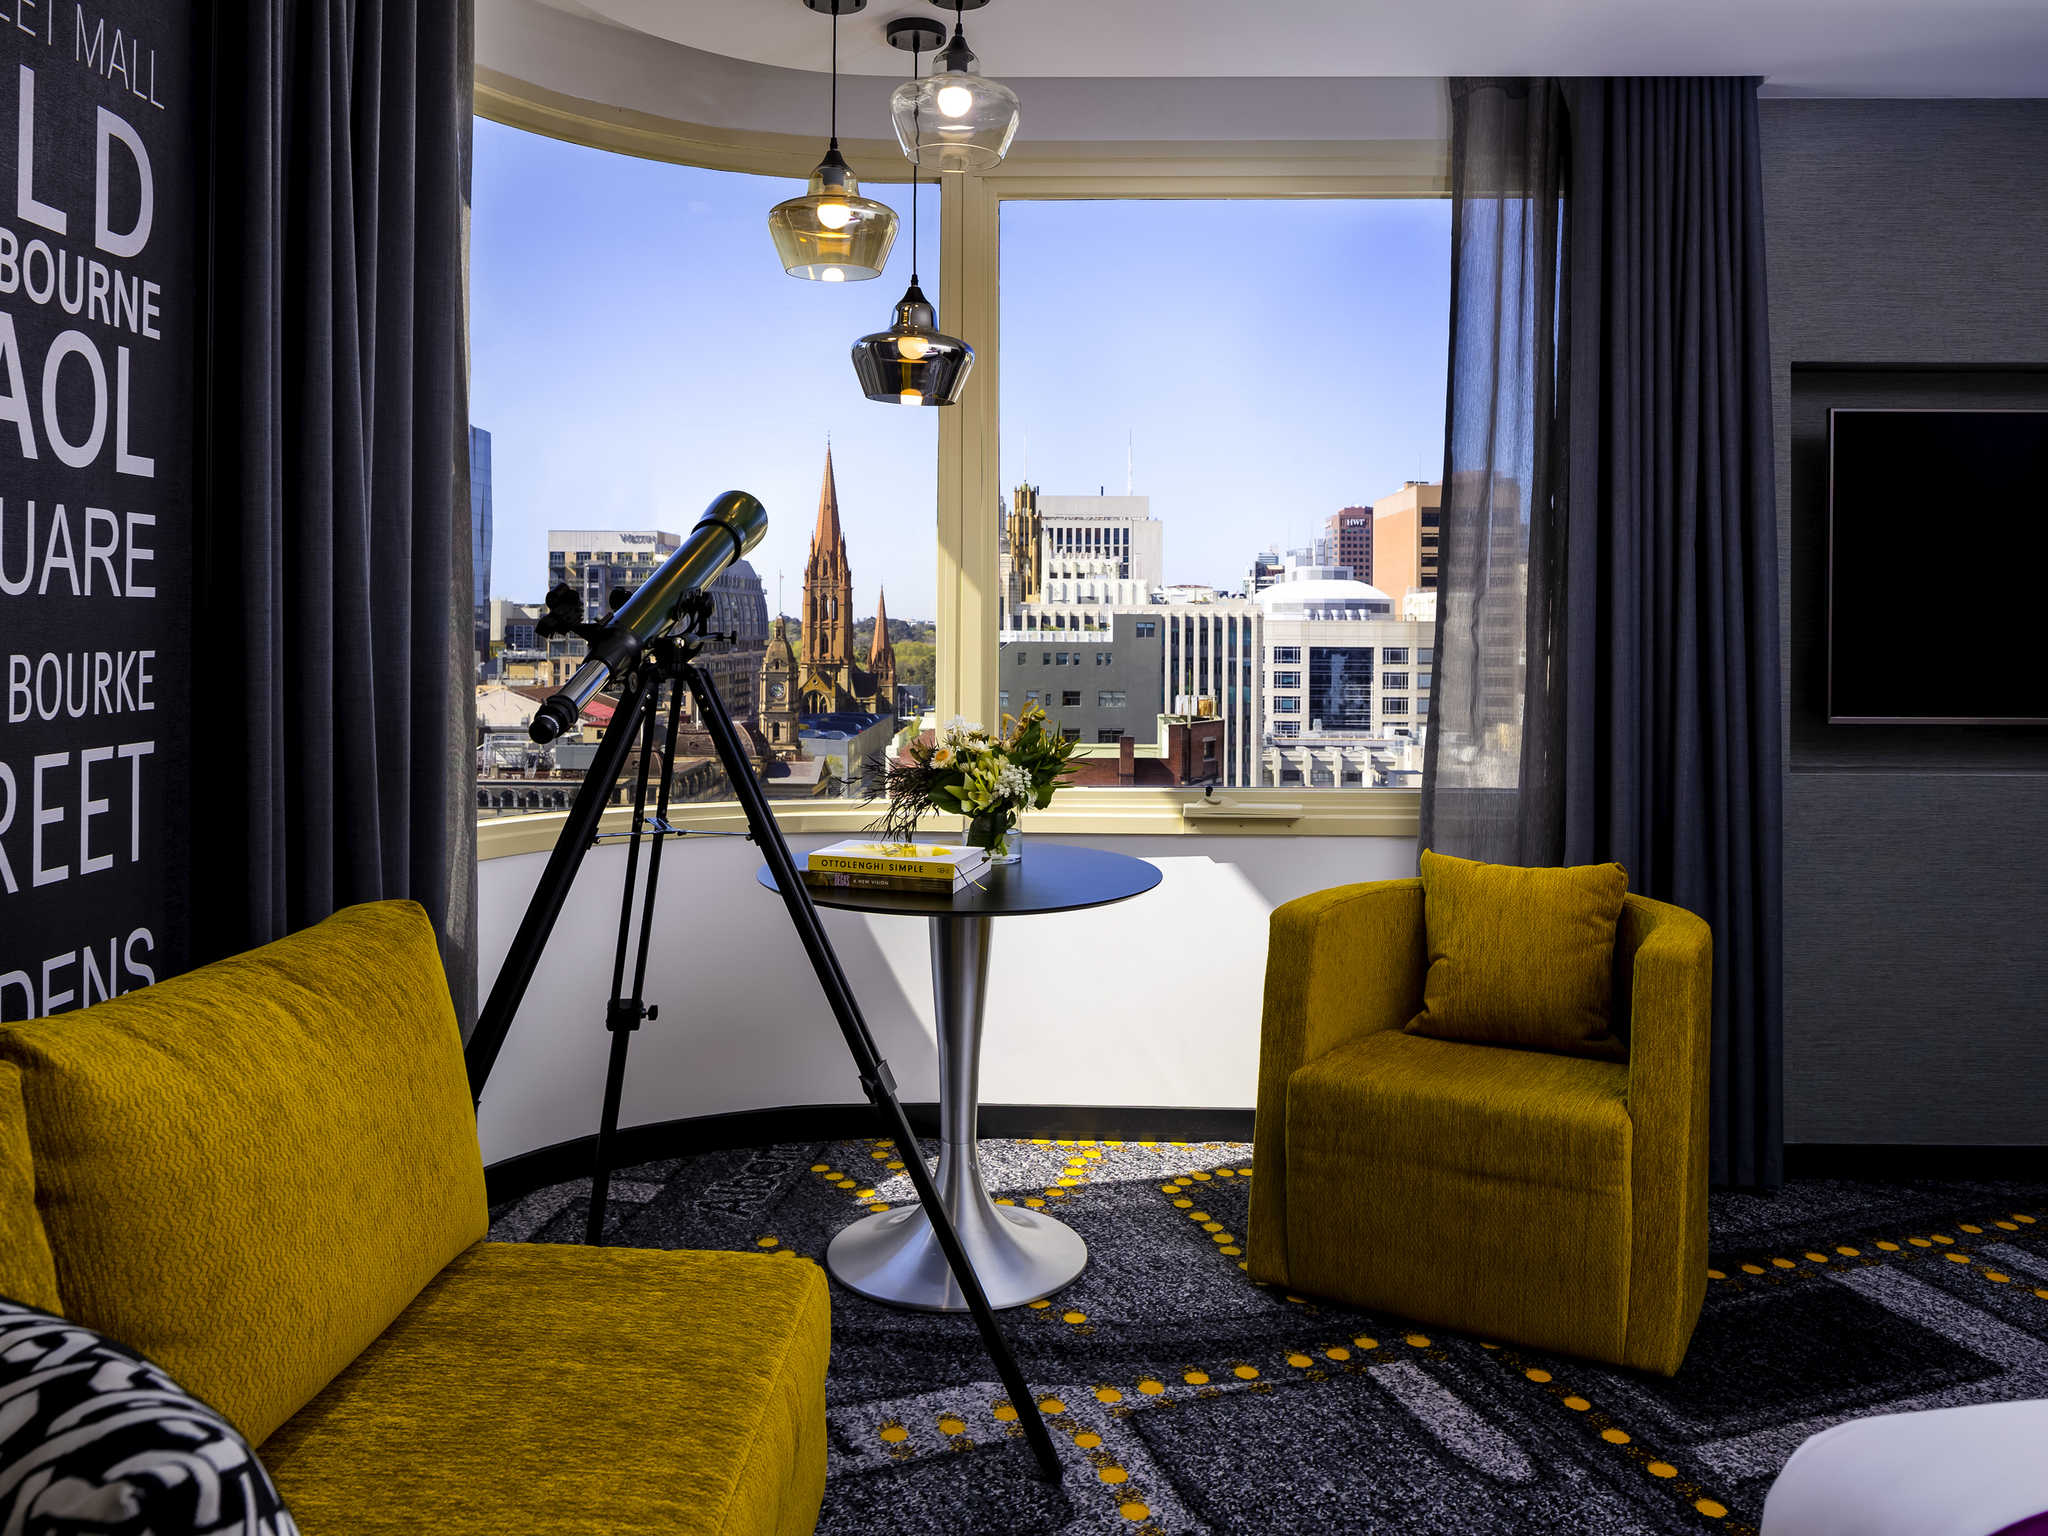 Hôtel - The Swanston Hotel Melbourne Grand Mercure